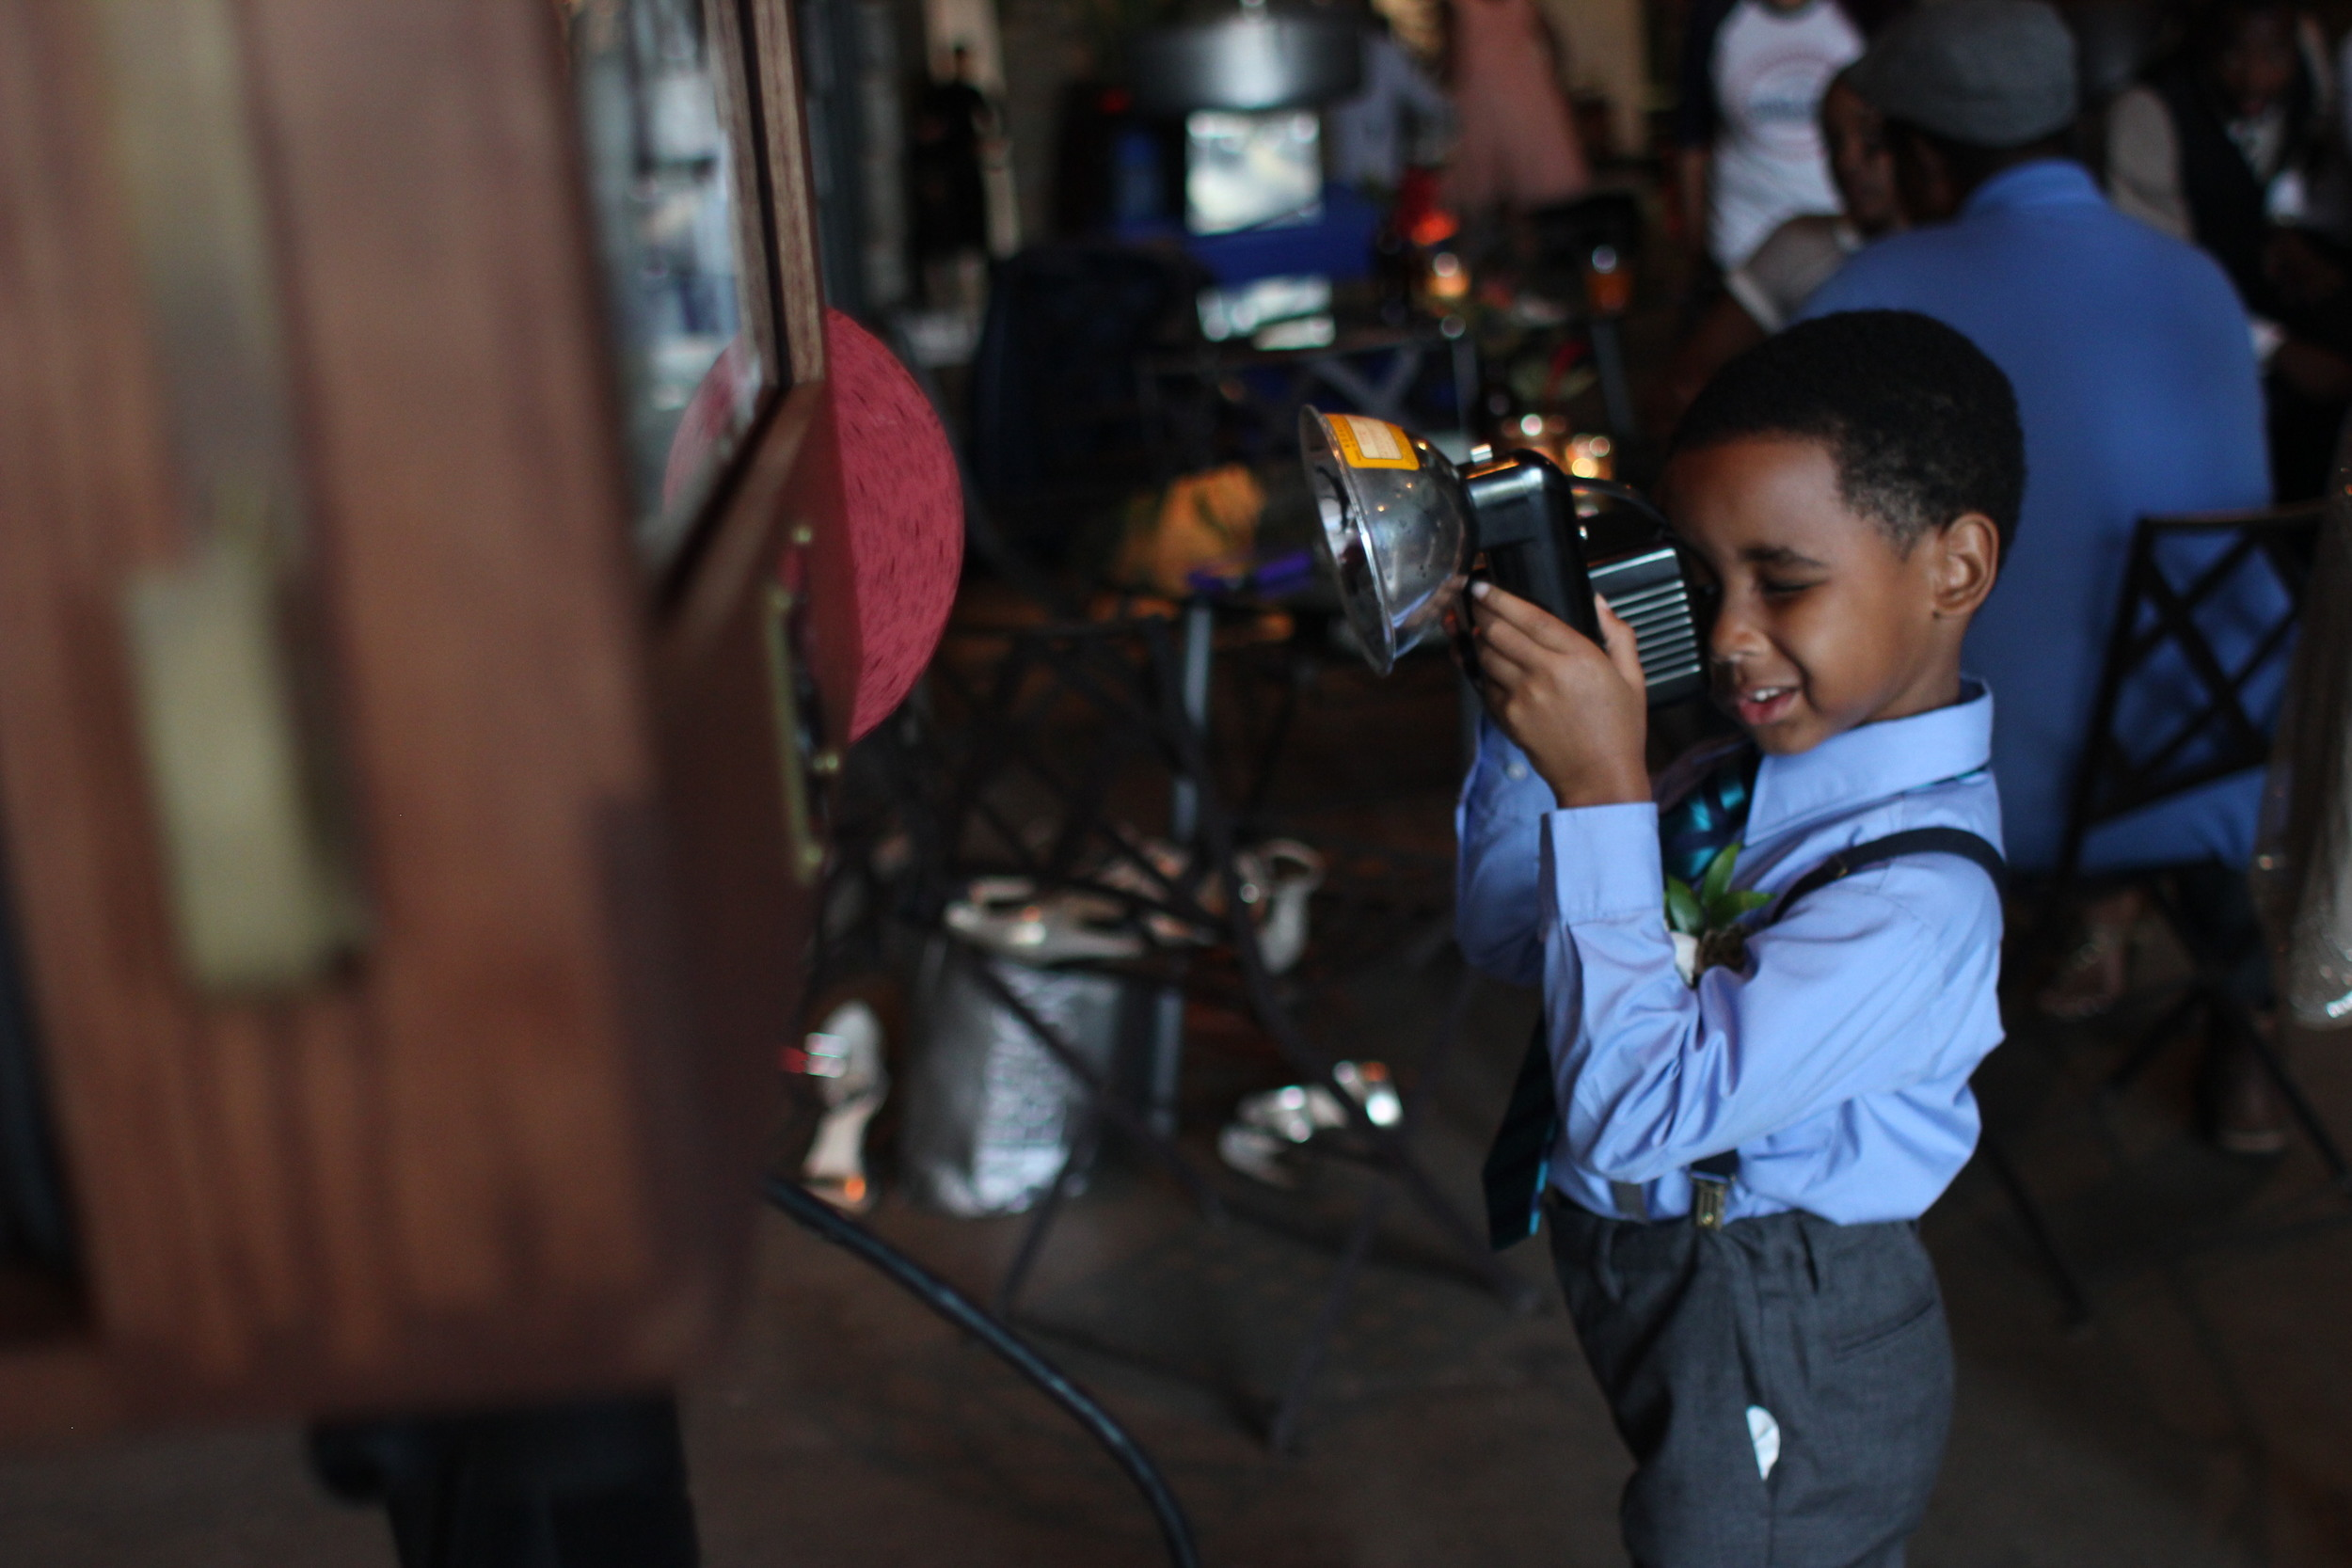 This little guy loved the vintage props - especially the Brownie Camera! Future photographer in training here!